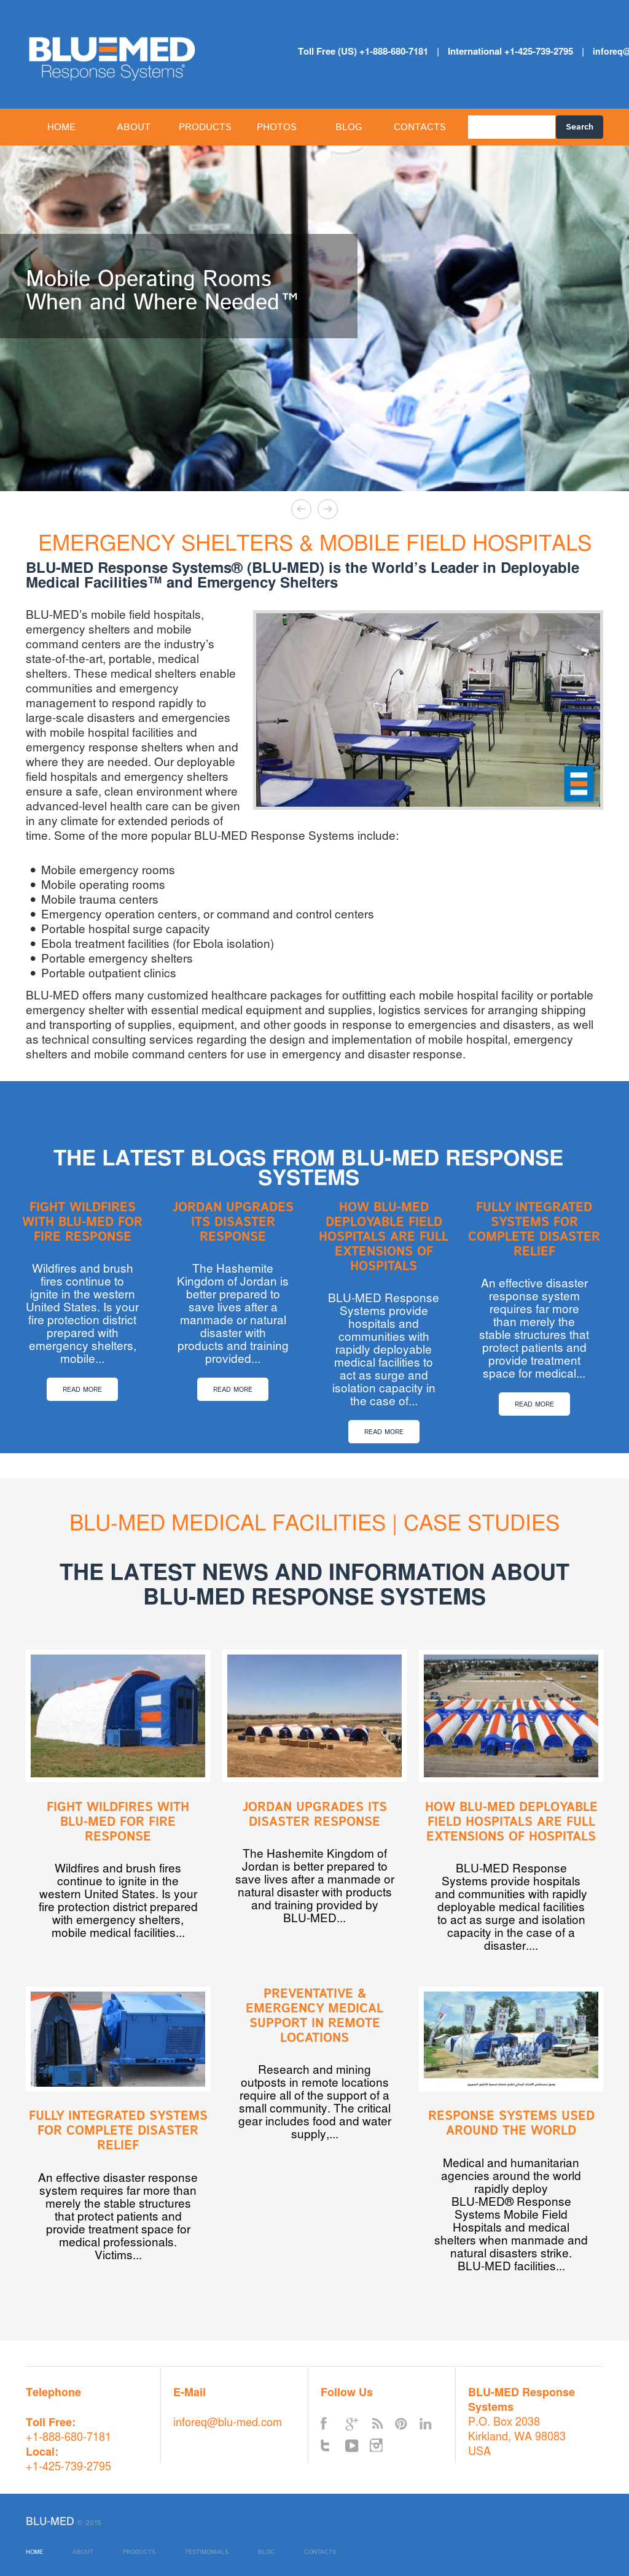 BLU-MED Response Systems Competitors, Revenue and Employees